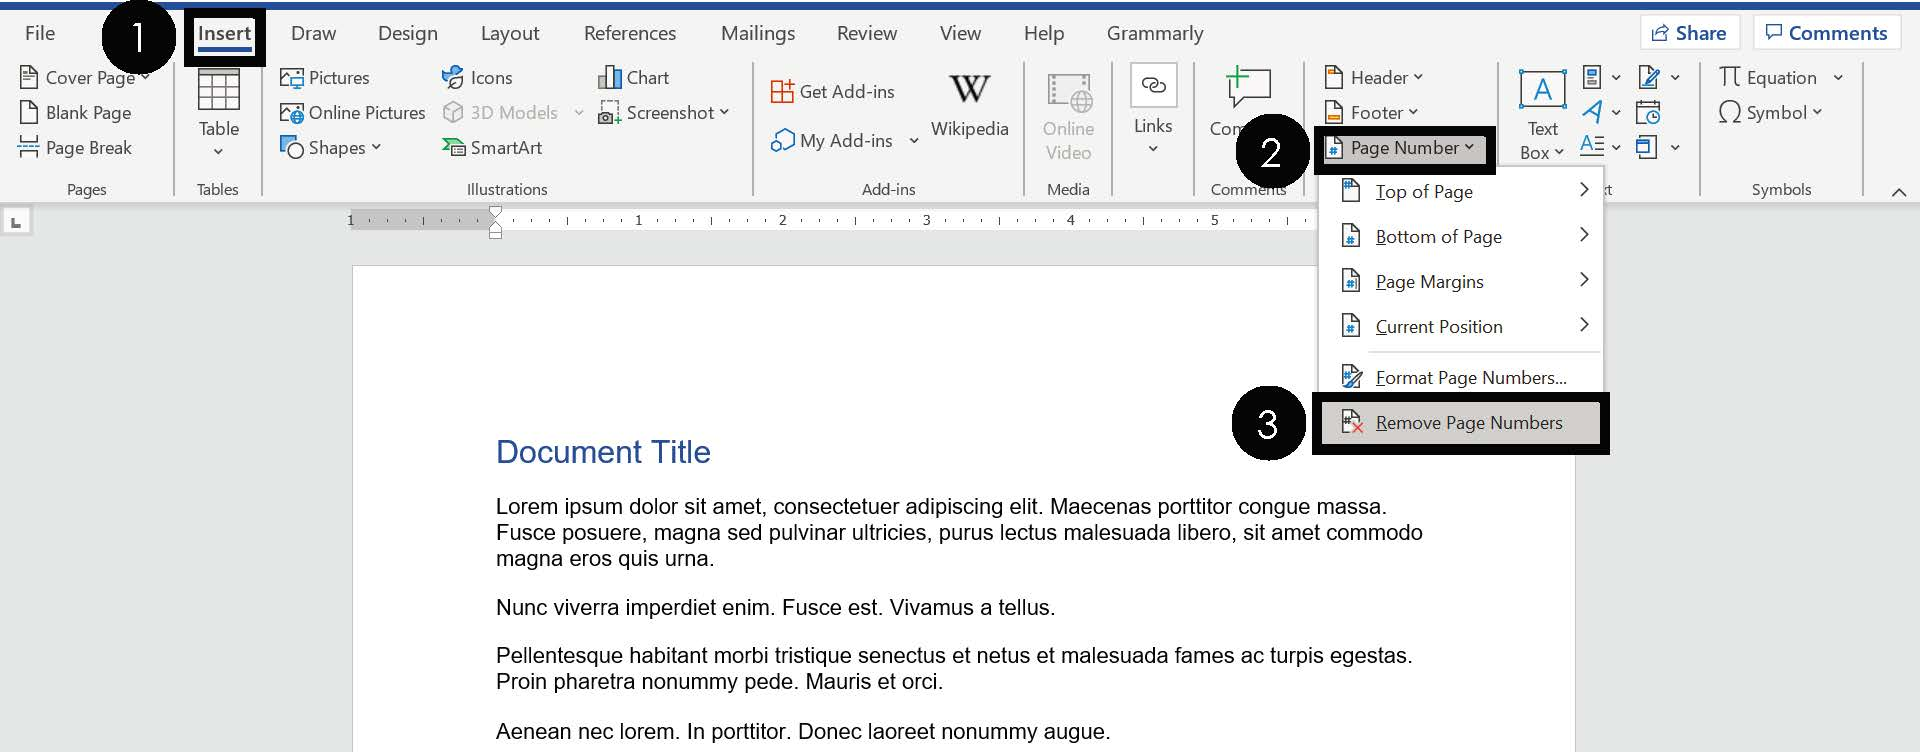 Open the Page Number dropdown Select Remove Page Numbers